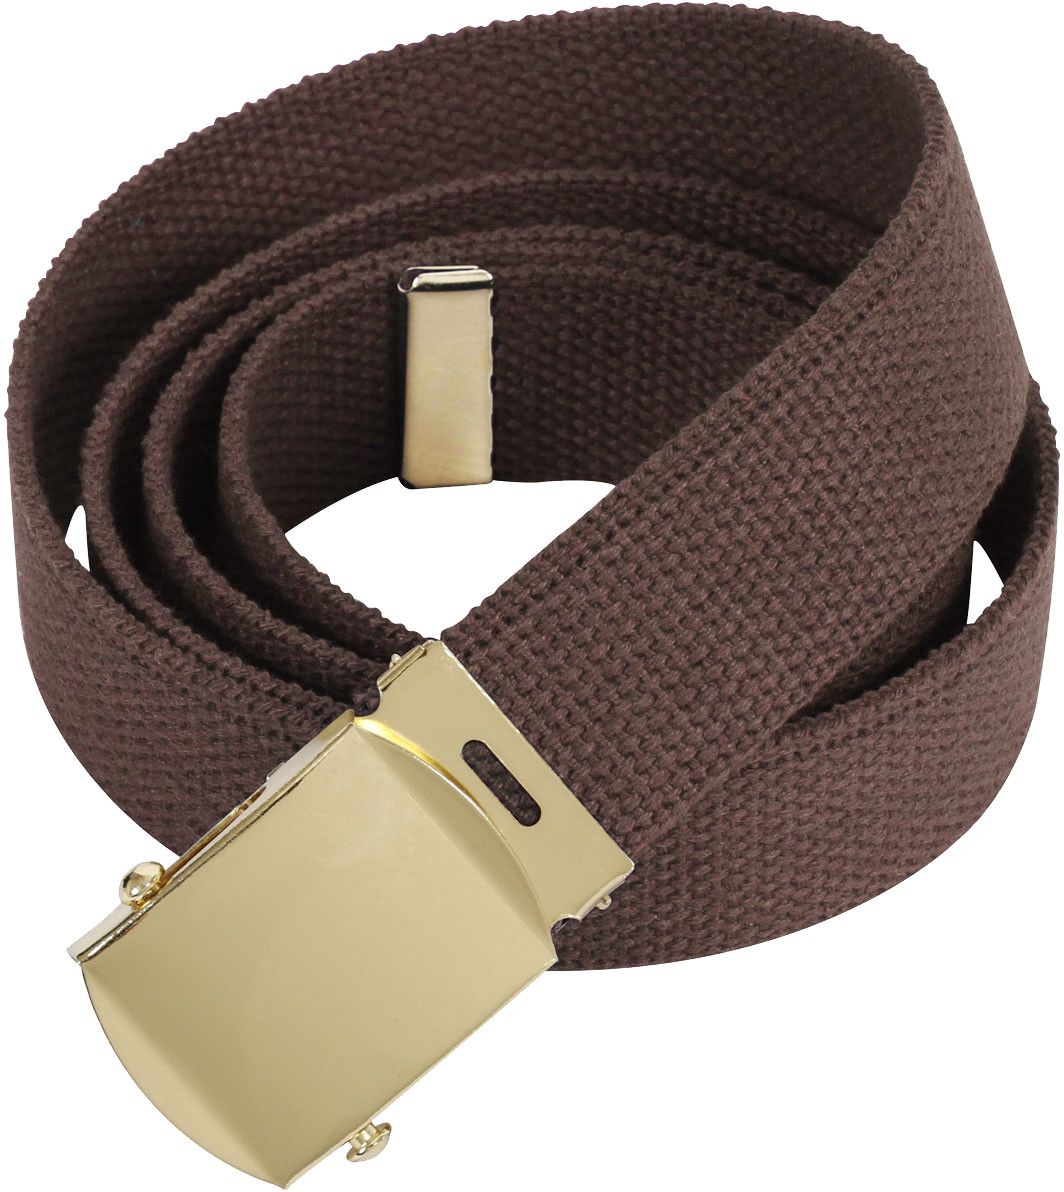 More Views. Brown Military Web Belt with Brass Buckle 69db3025577